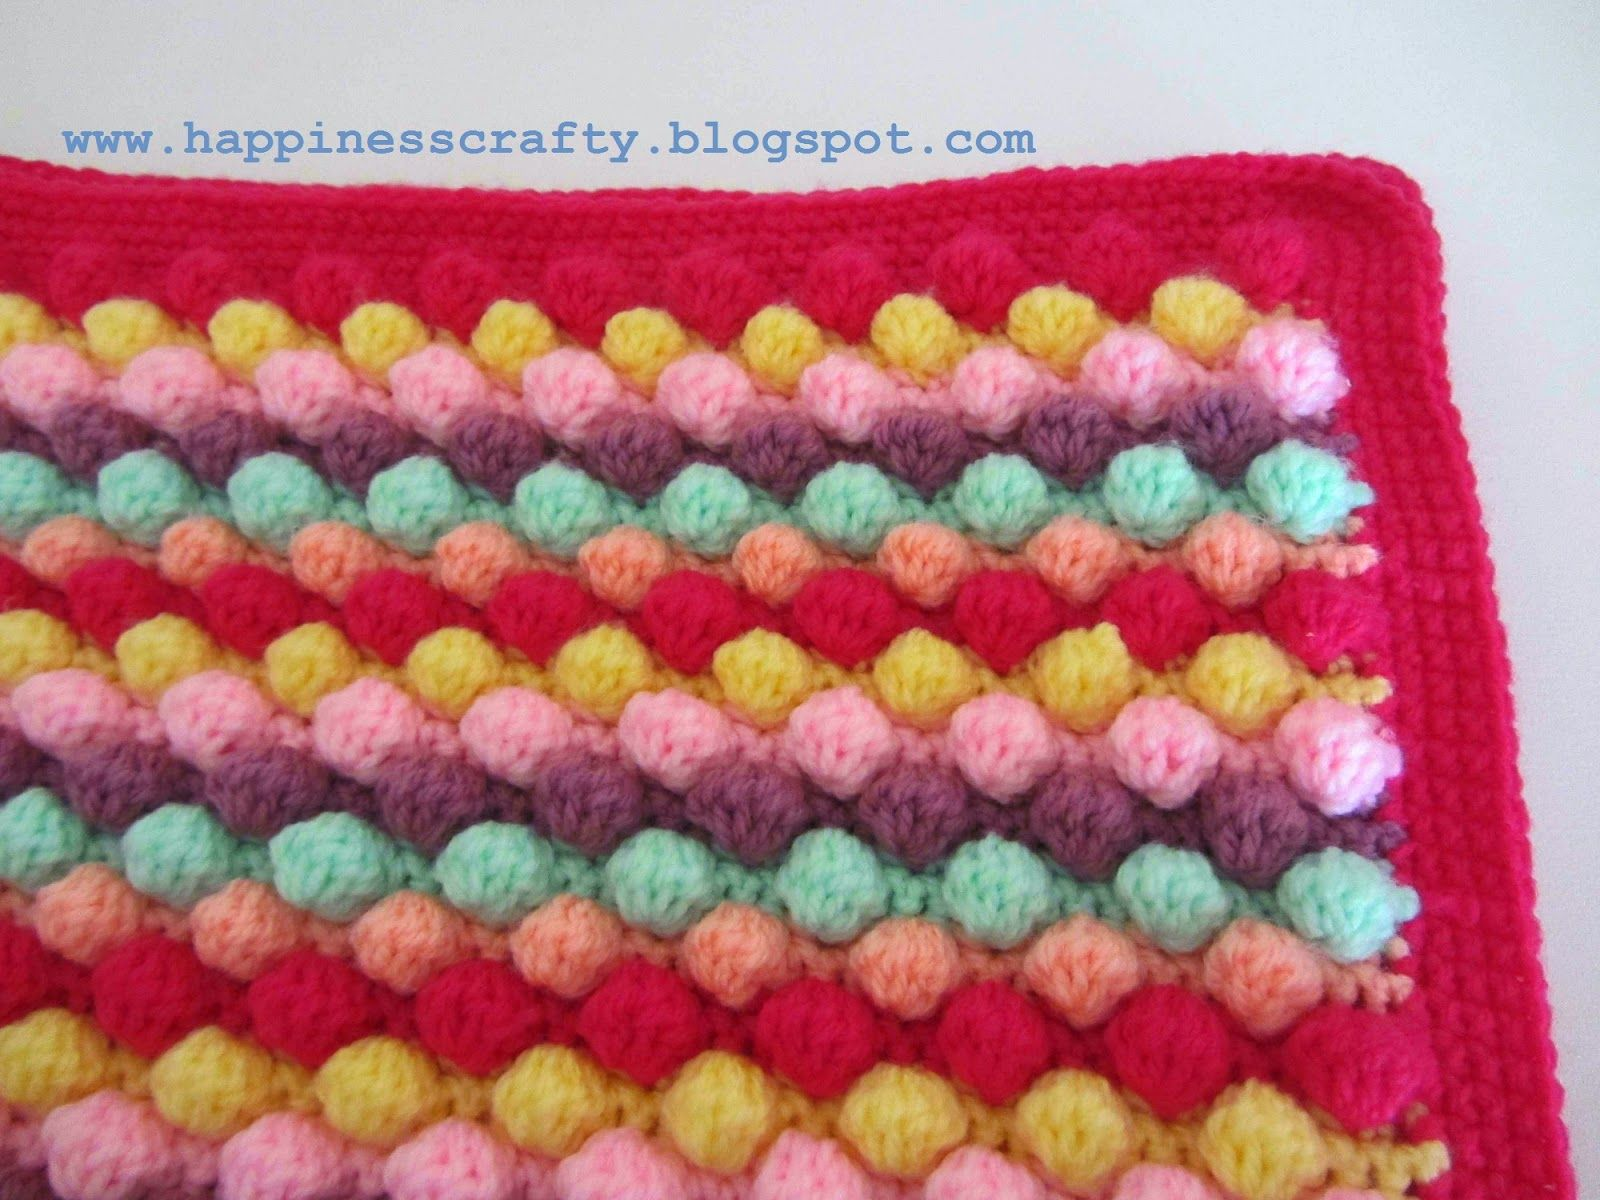 Happiness Crafty: Crochet Baby Girl Bobble Blanket ~ Free Pattern ...